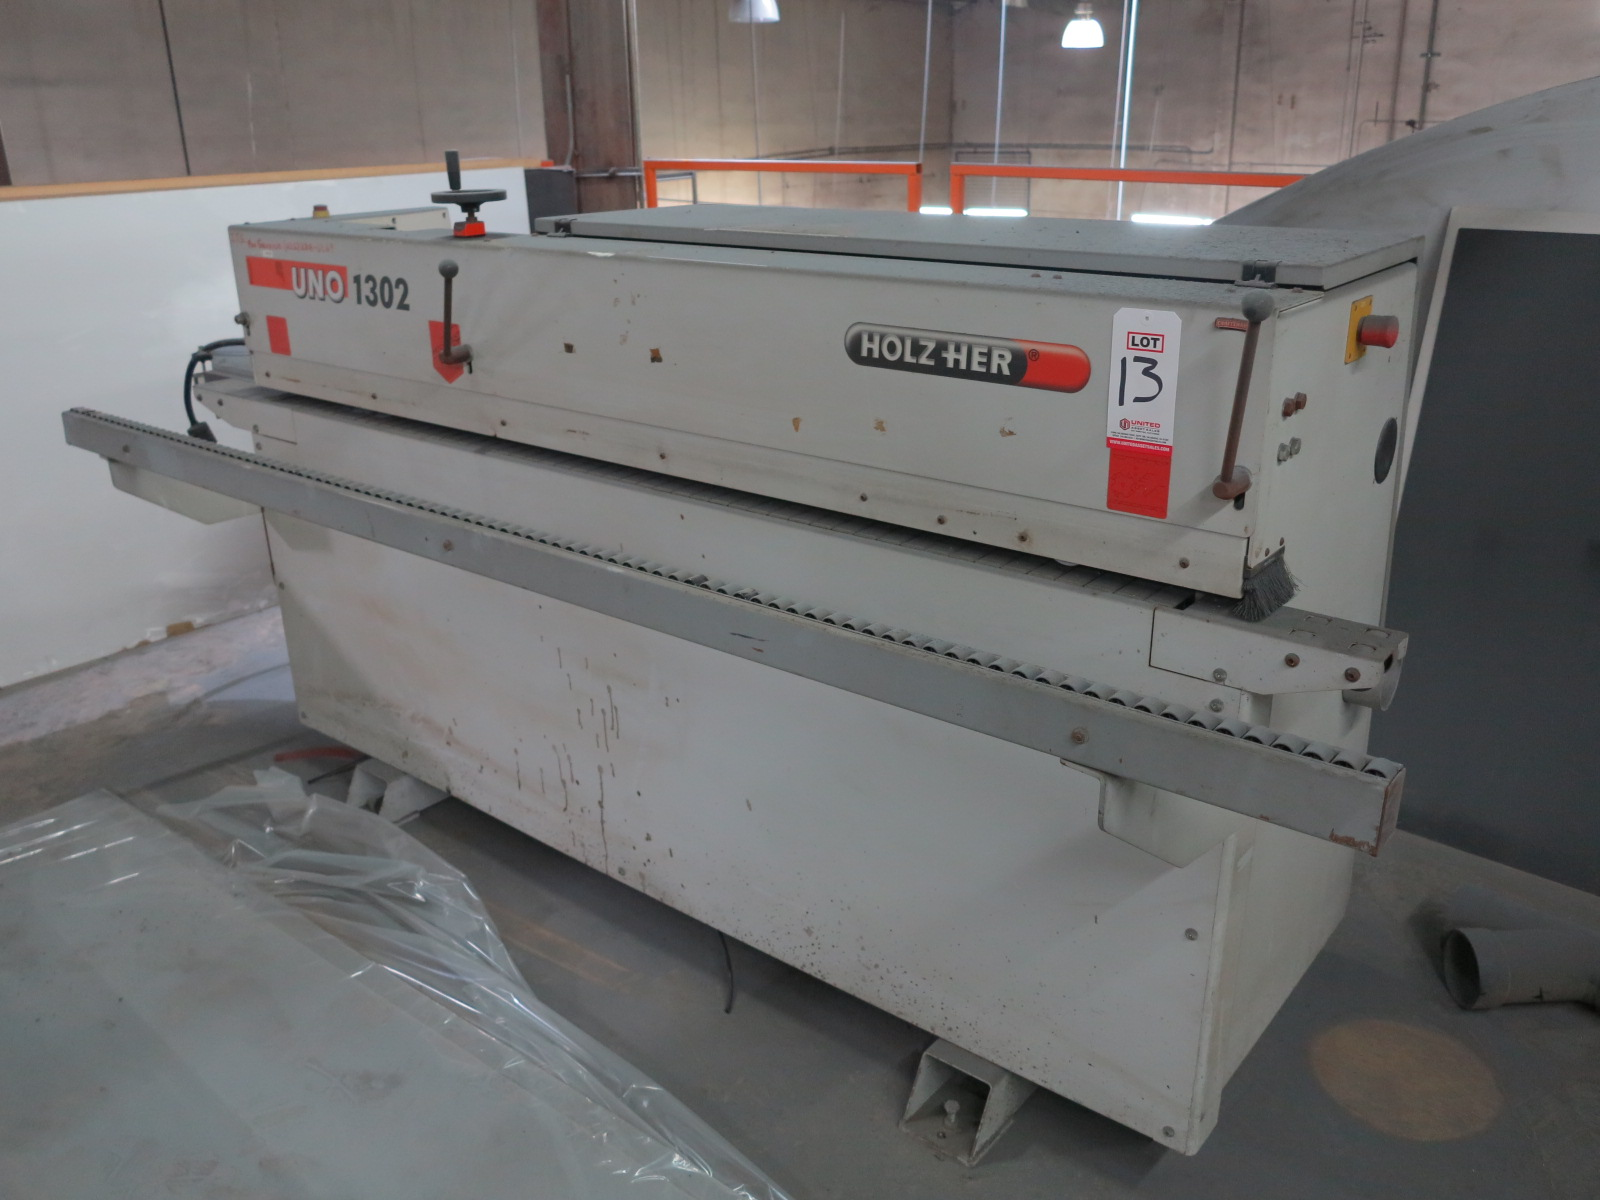 2006 HOLZ-HER UNO 1302 AUTOMATIC EDGE BANDER, S/N 106/0-610_5006714